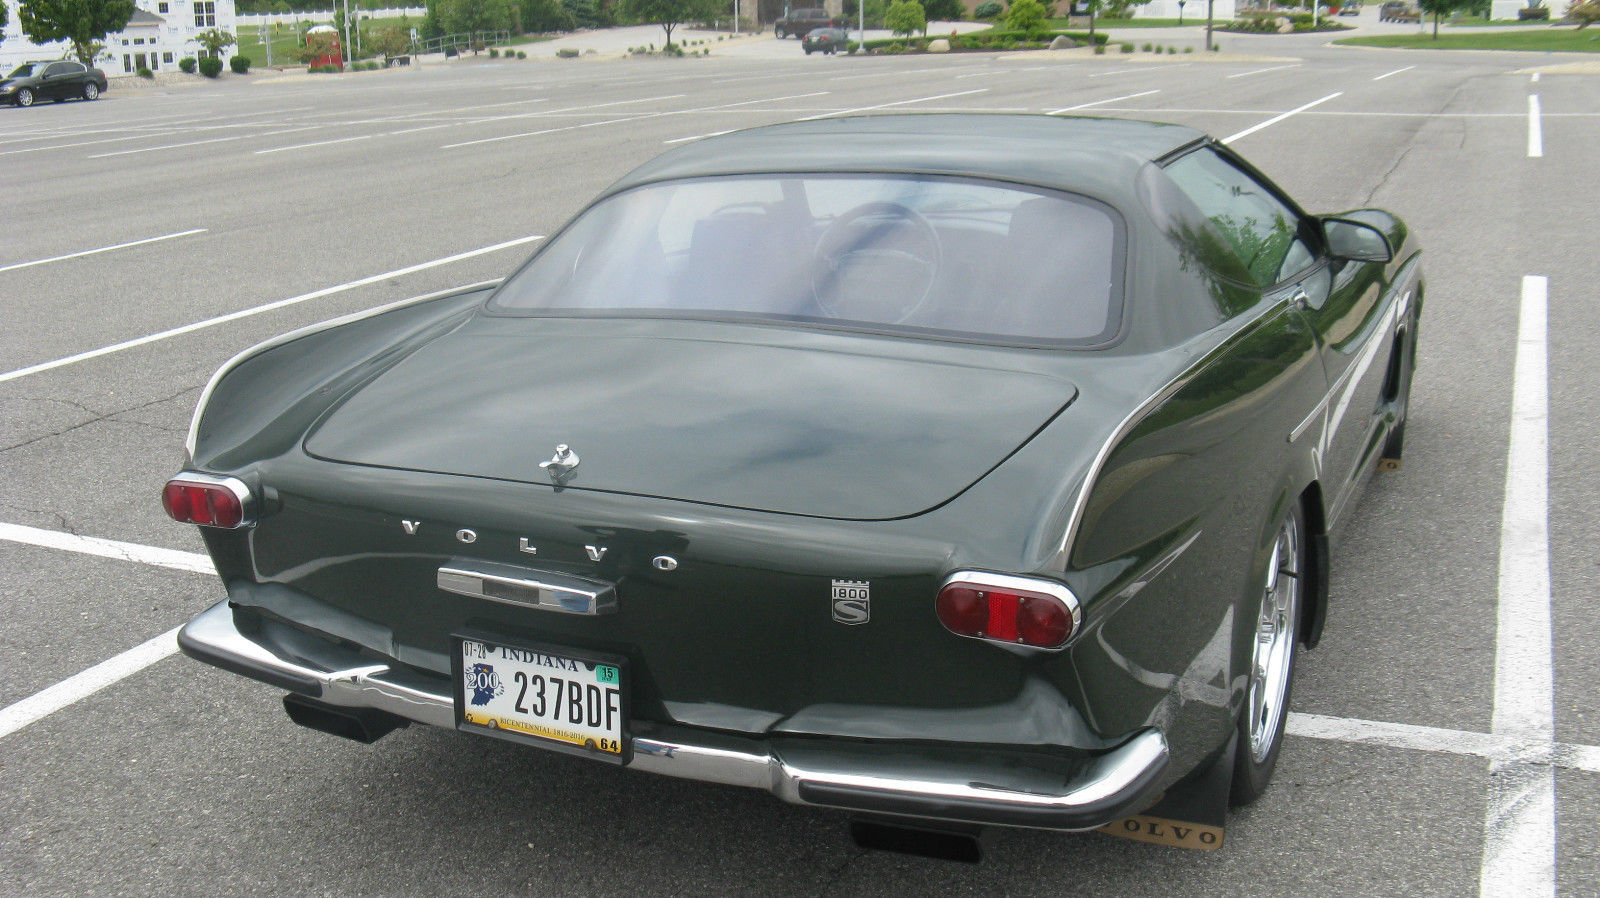 Volvette Is A 1992 Corvette With A 1967 Volvo P1800 Body | Carscoops